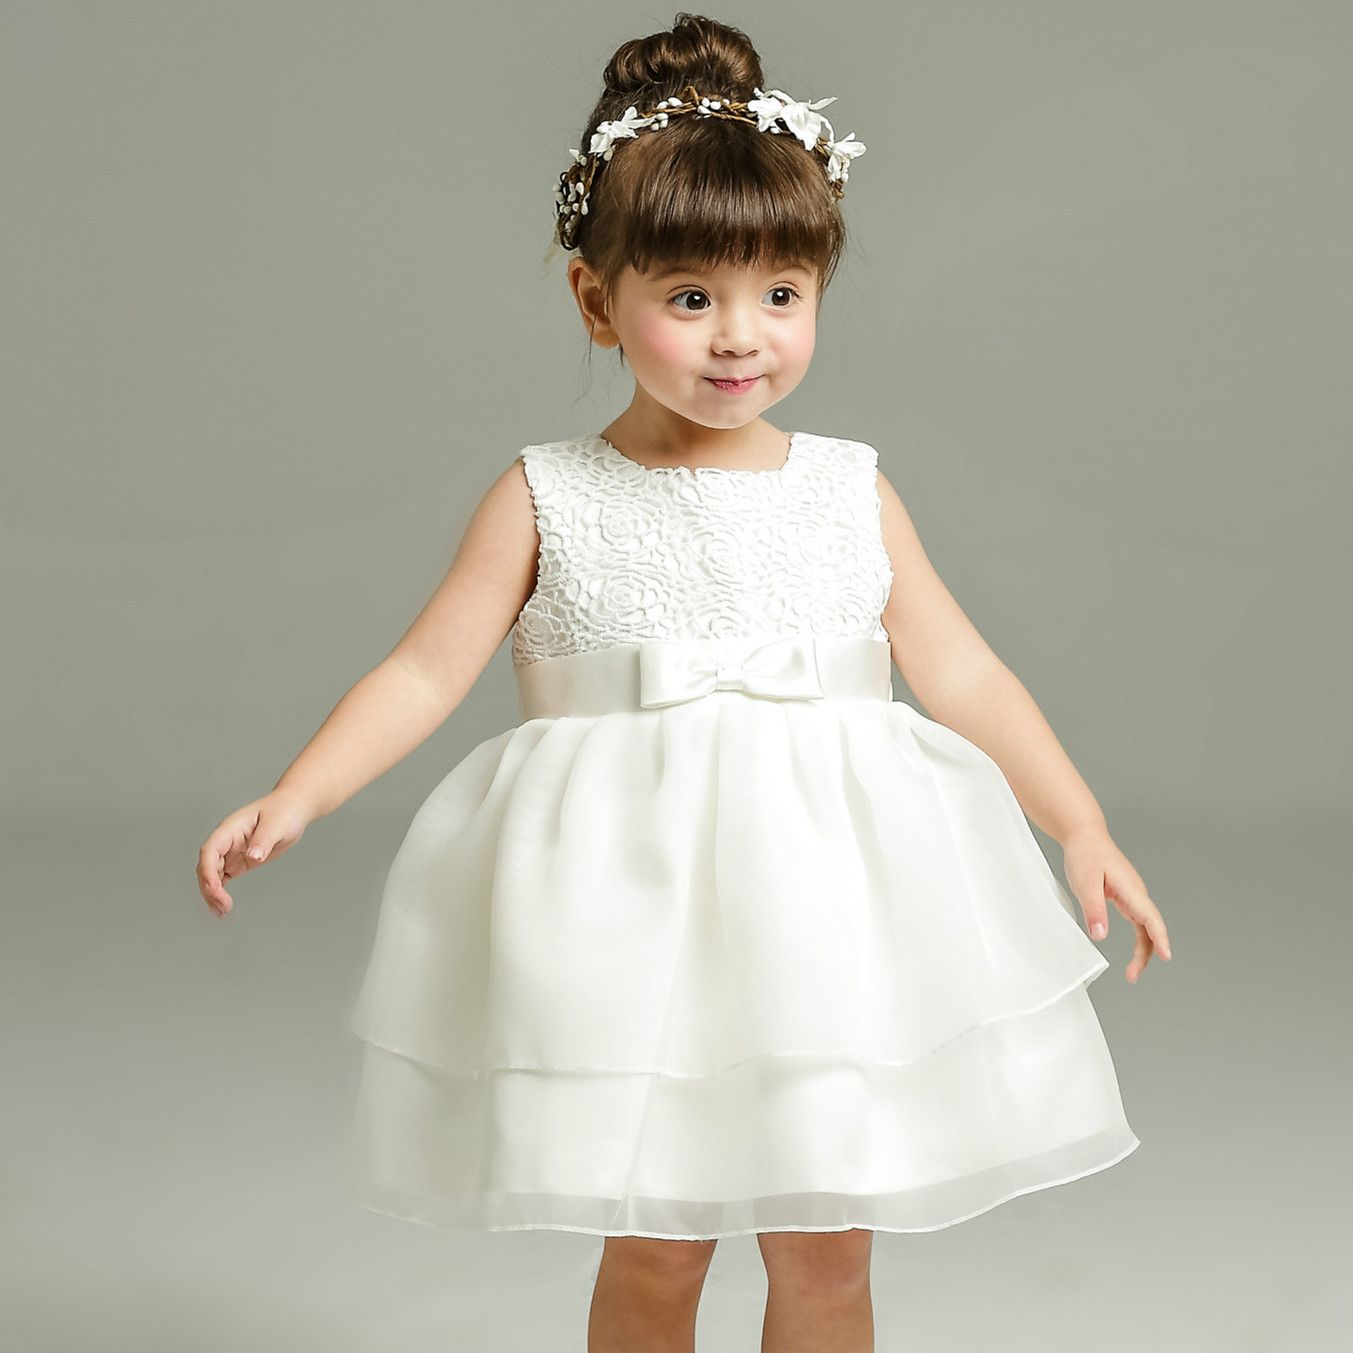 05f5e0493ebba 1 Year Old Baby Girl Dress Beige Princess Wedding Birthday Formal ...